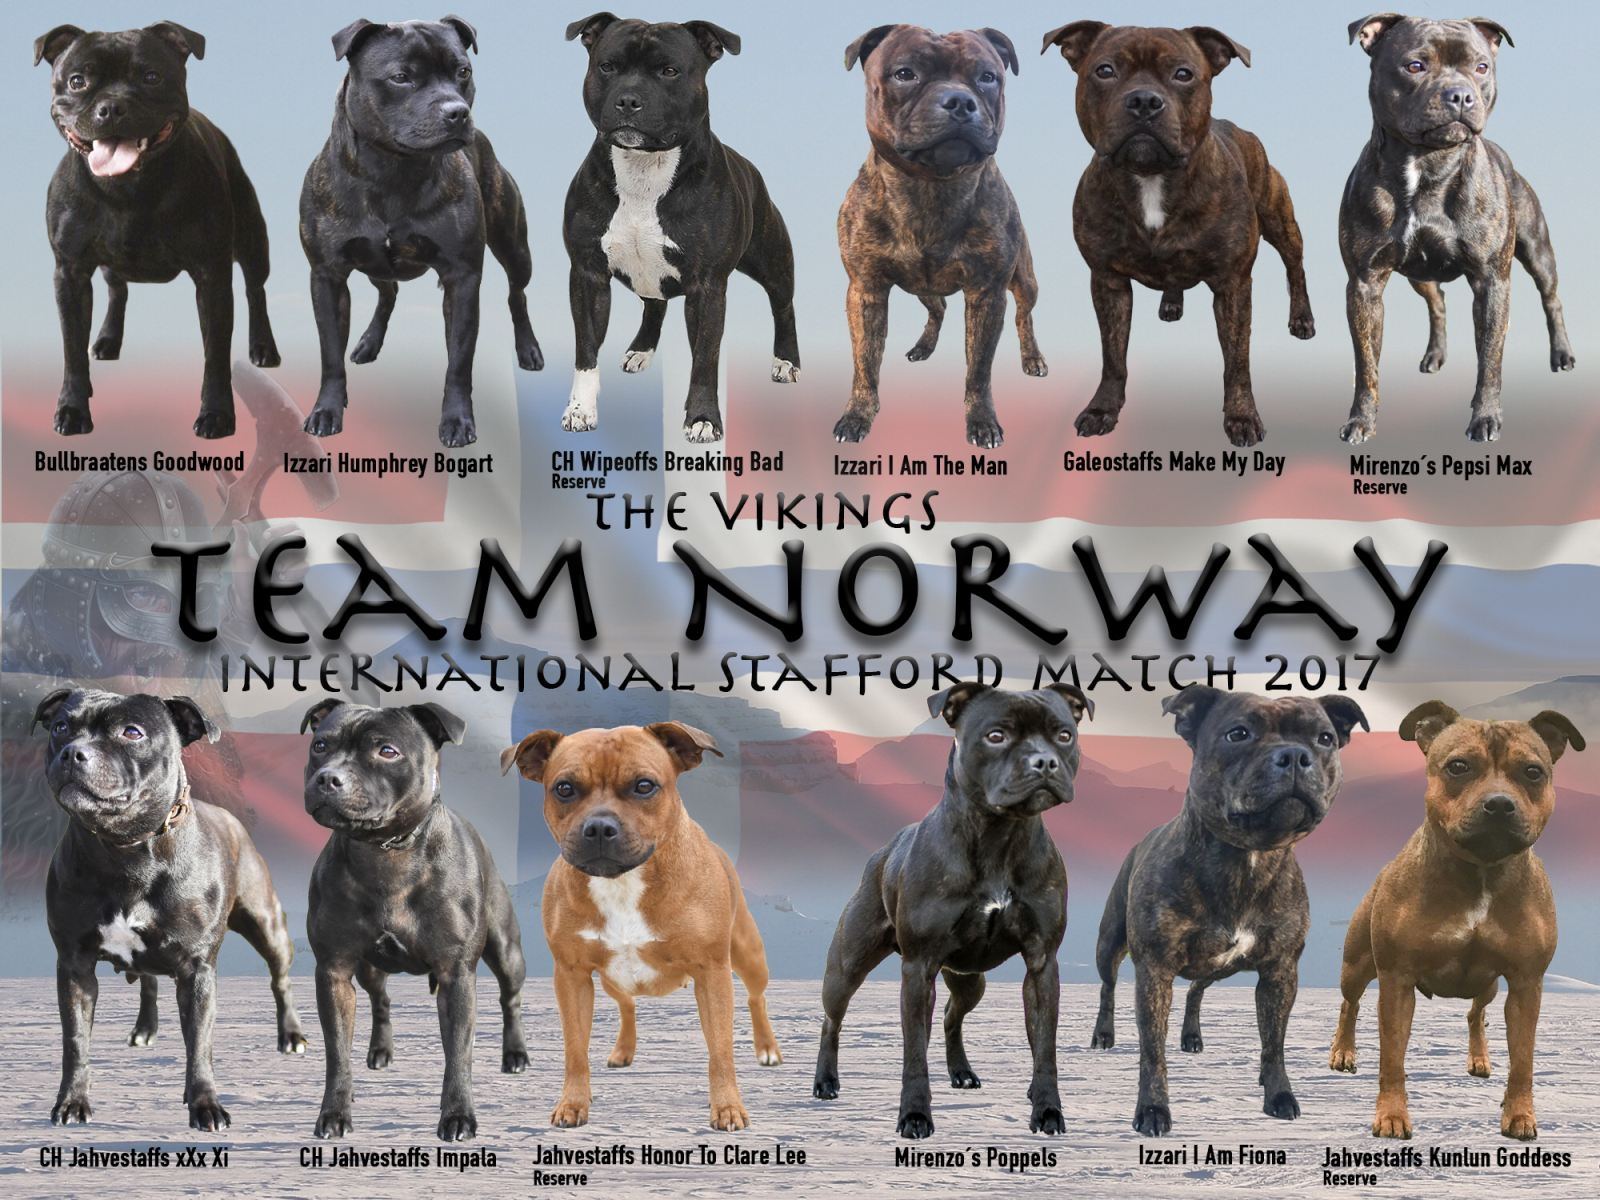 Team Norway 2017